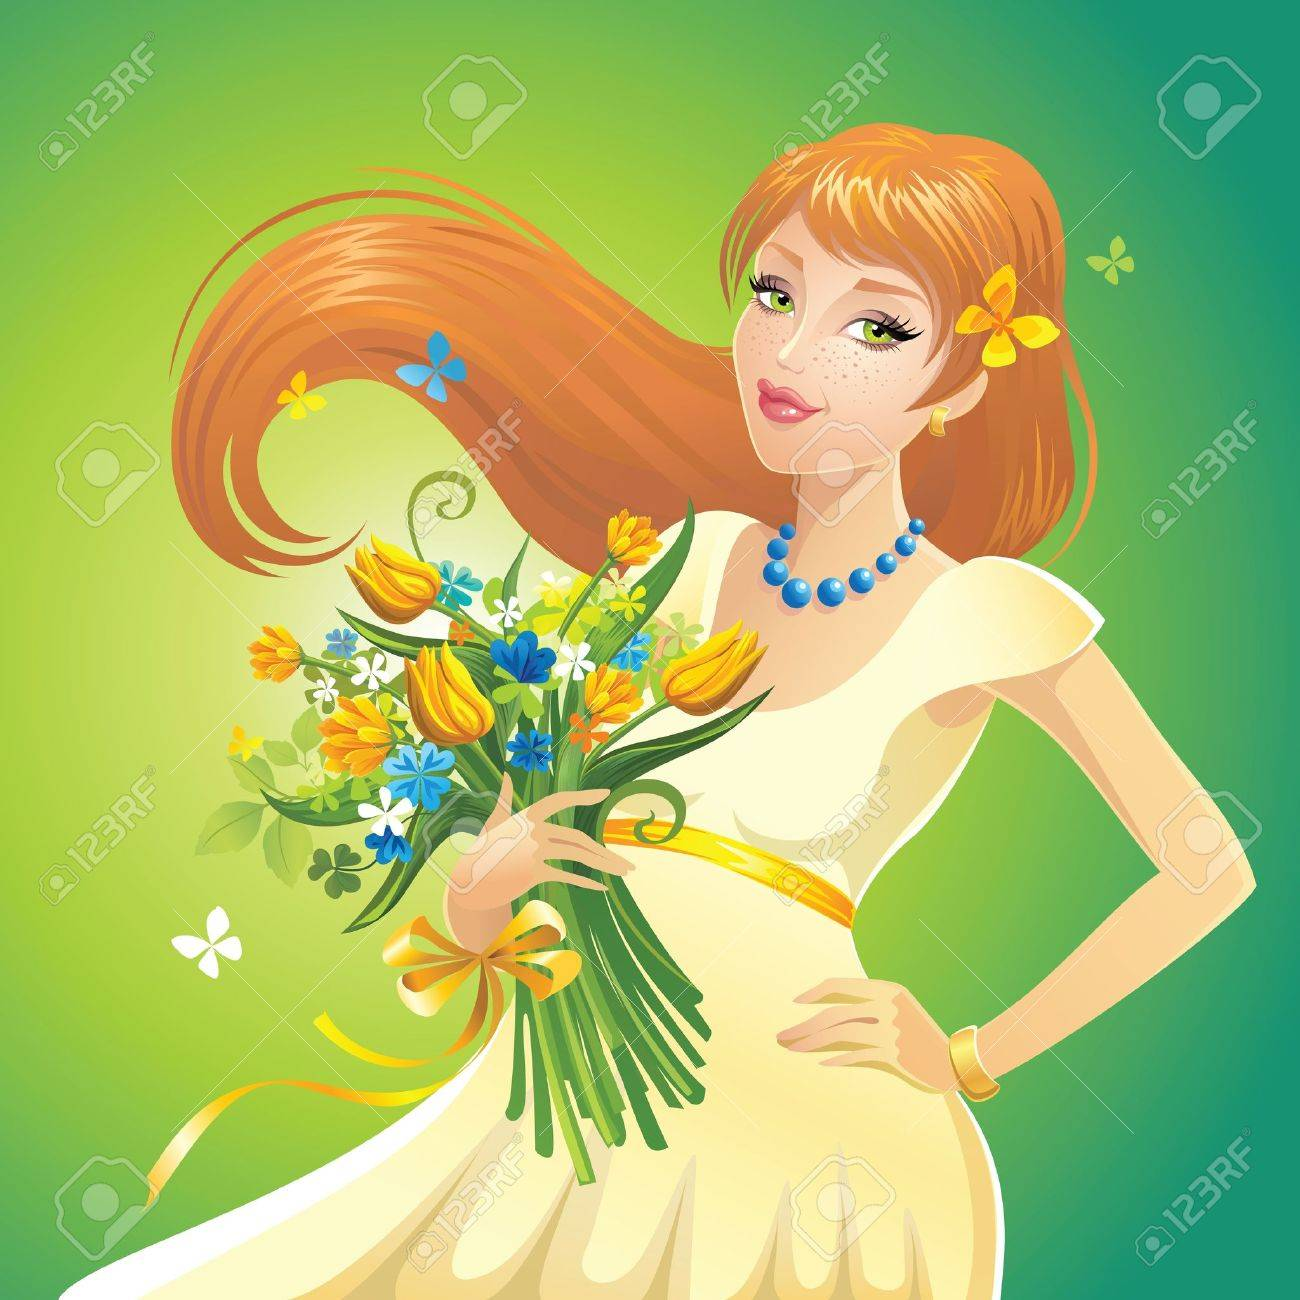 redhead girl with flowers - 15737104